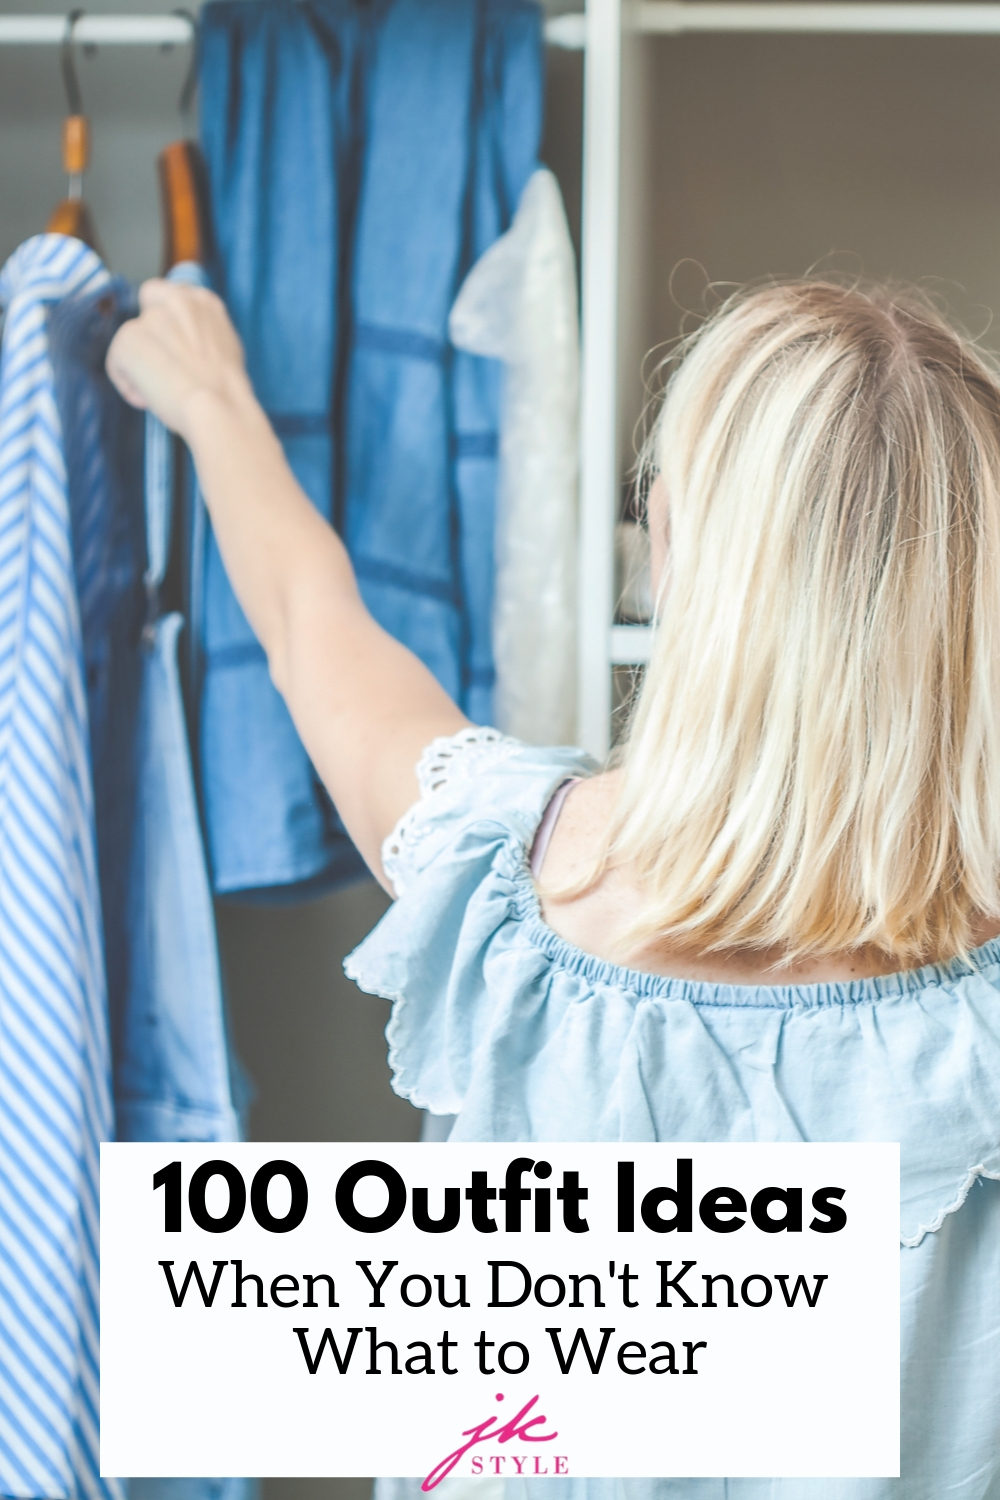 what to wear - 100 outfit ideas JK Style